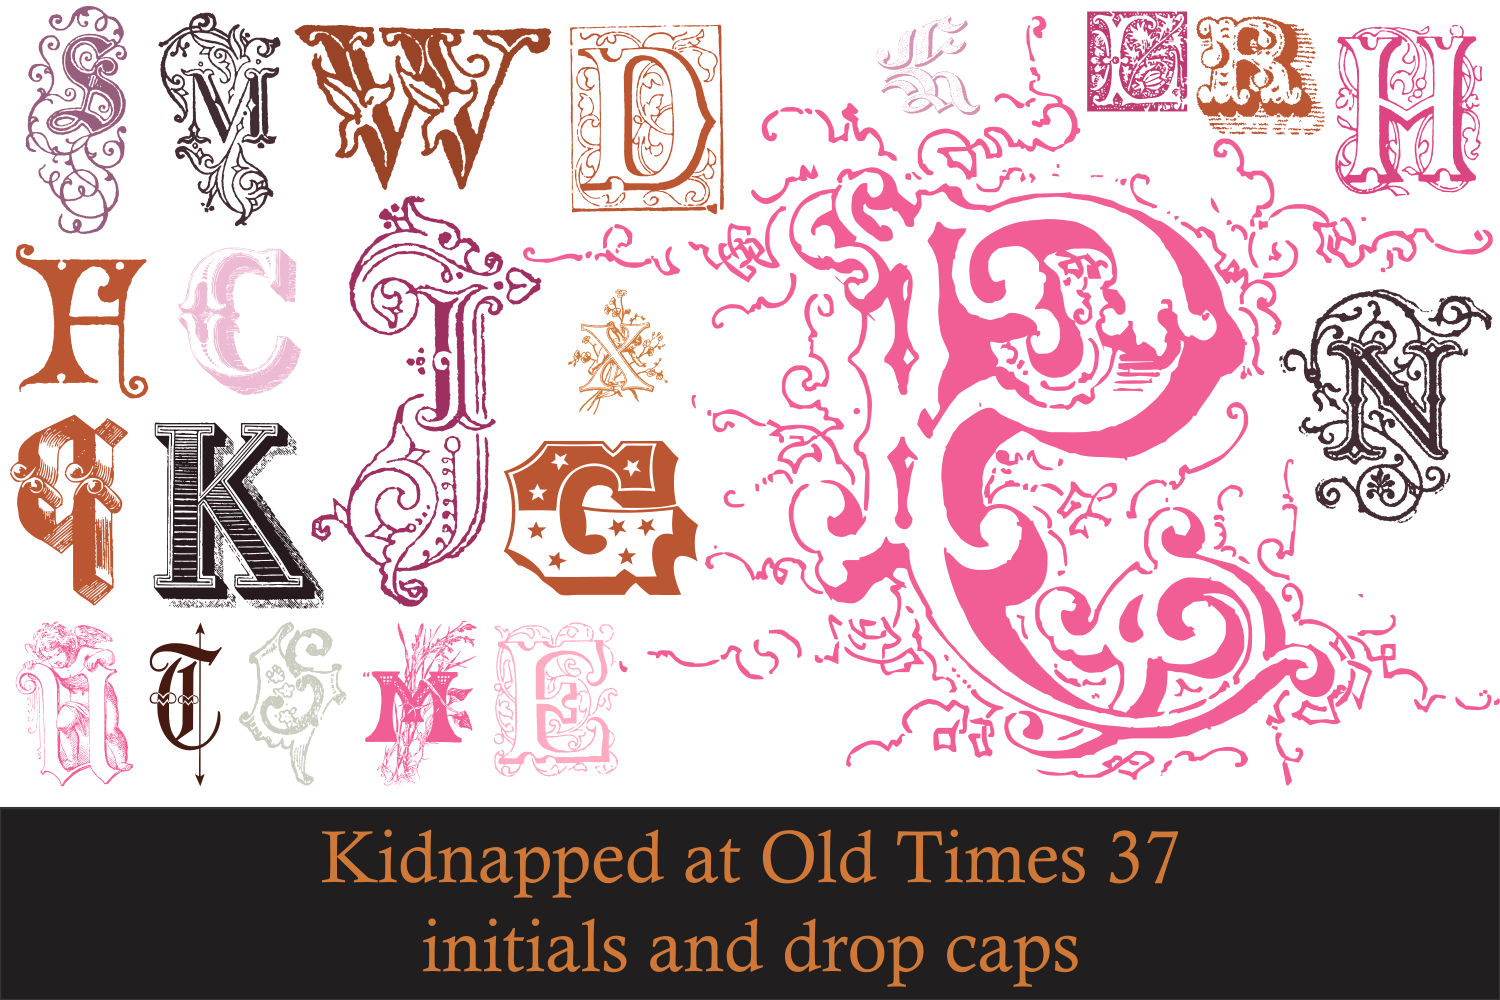 Kidnapped at Old Times 37 example image 1